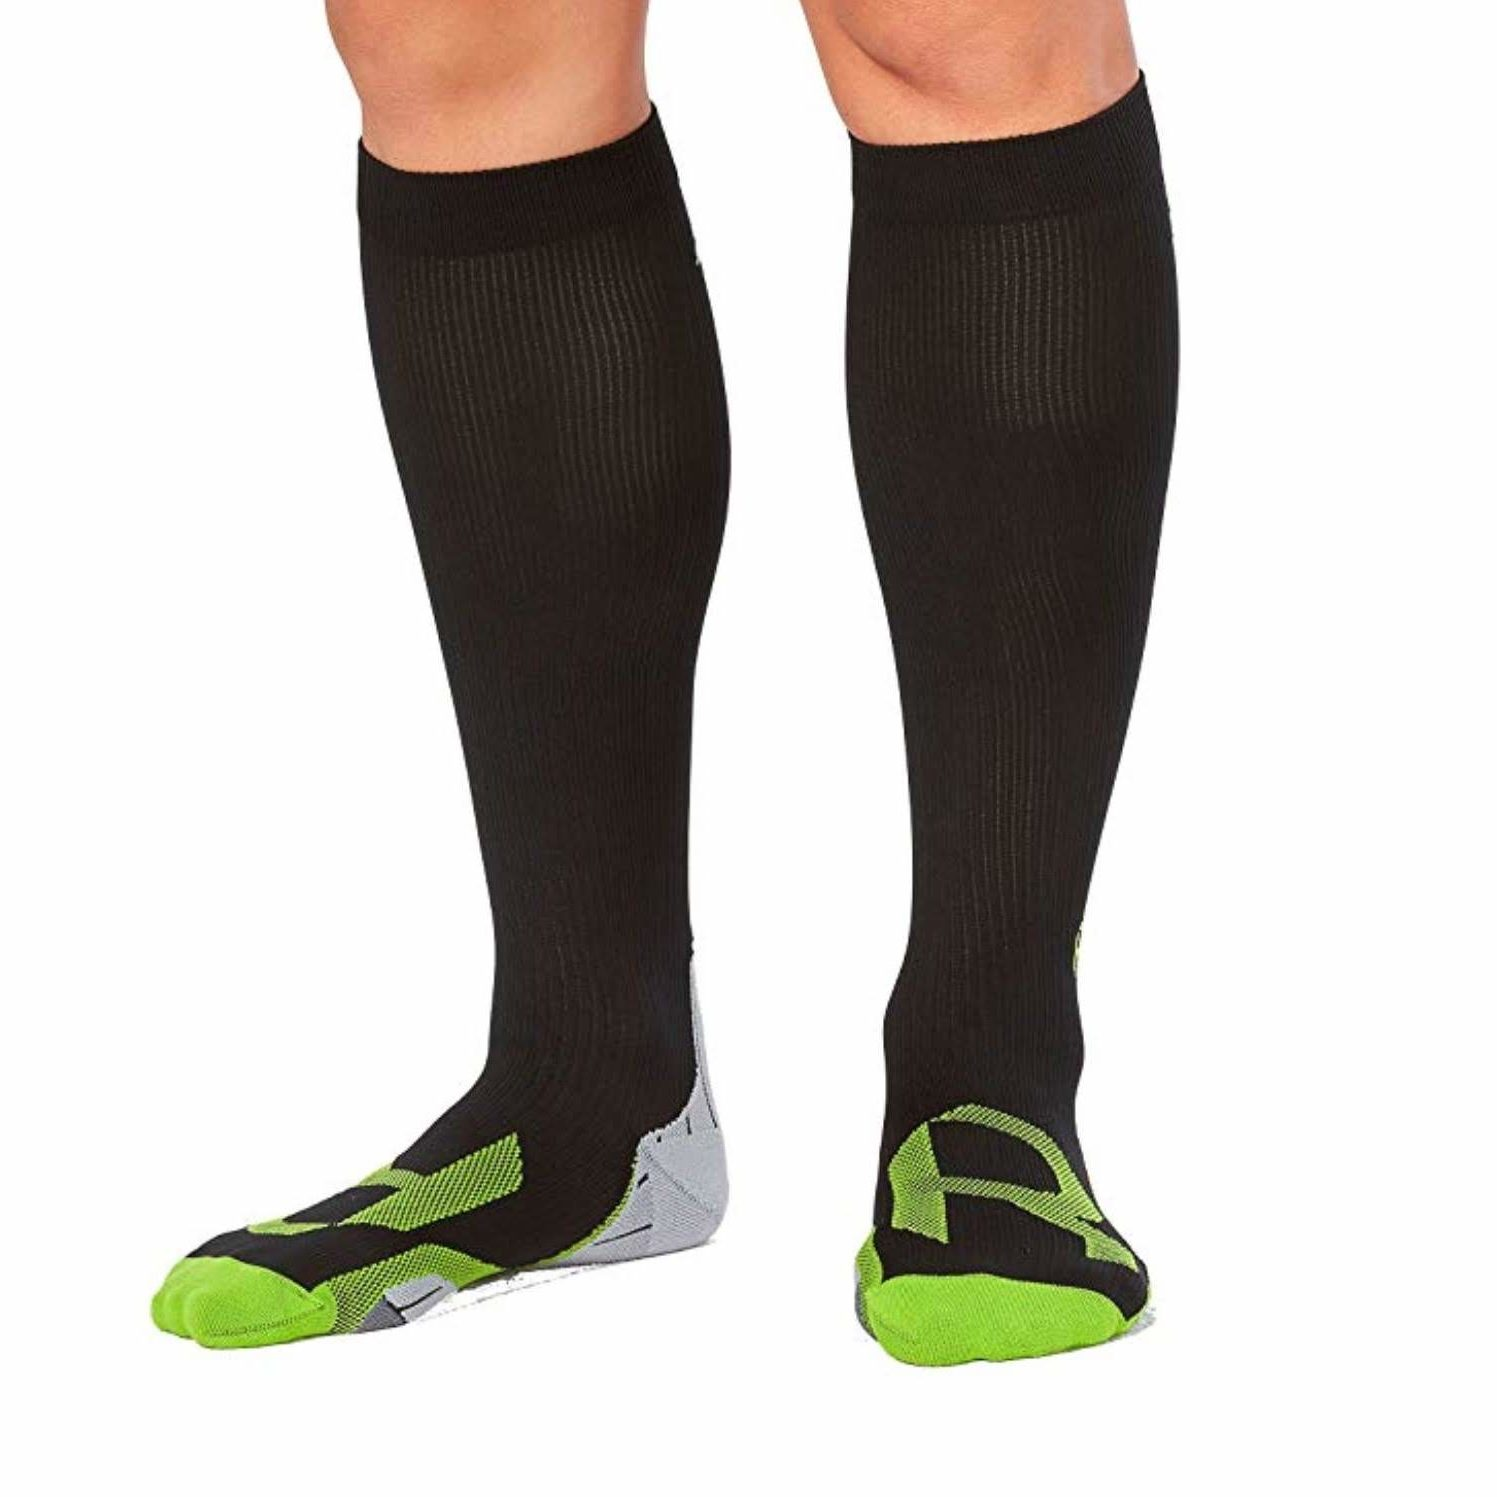 2XUWomensCompressionsocks